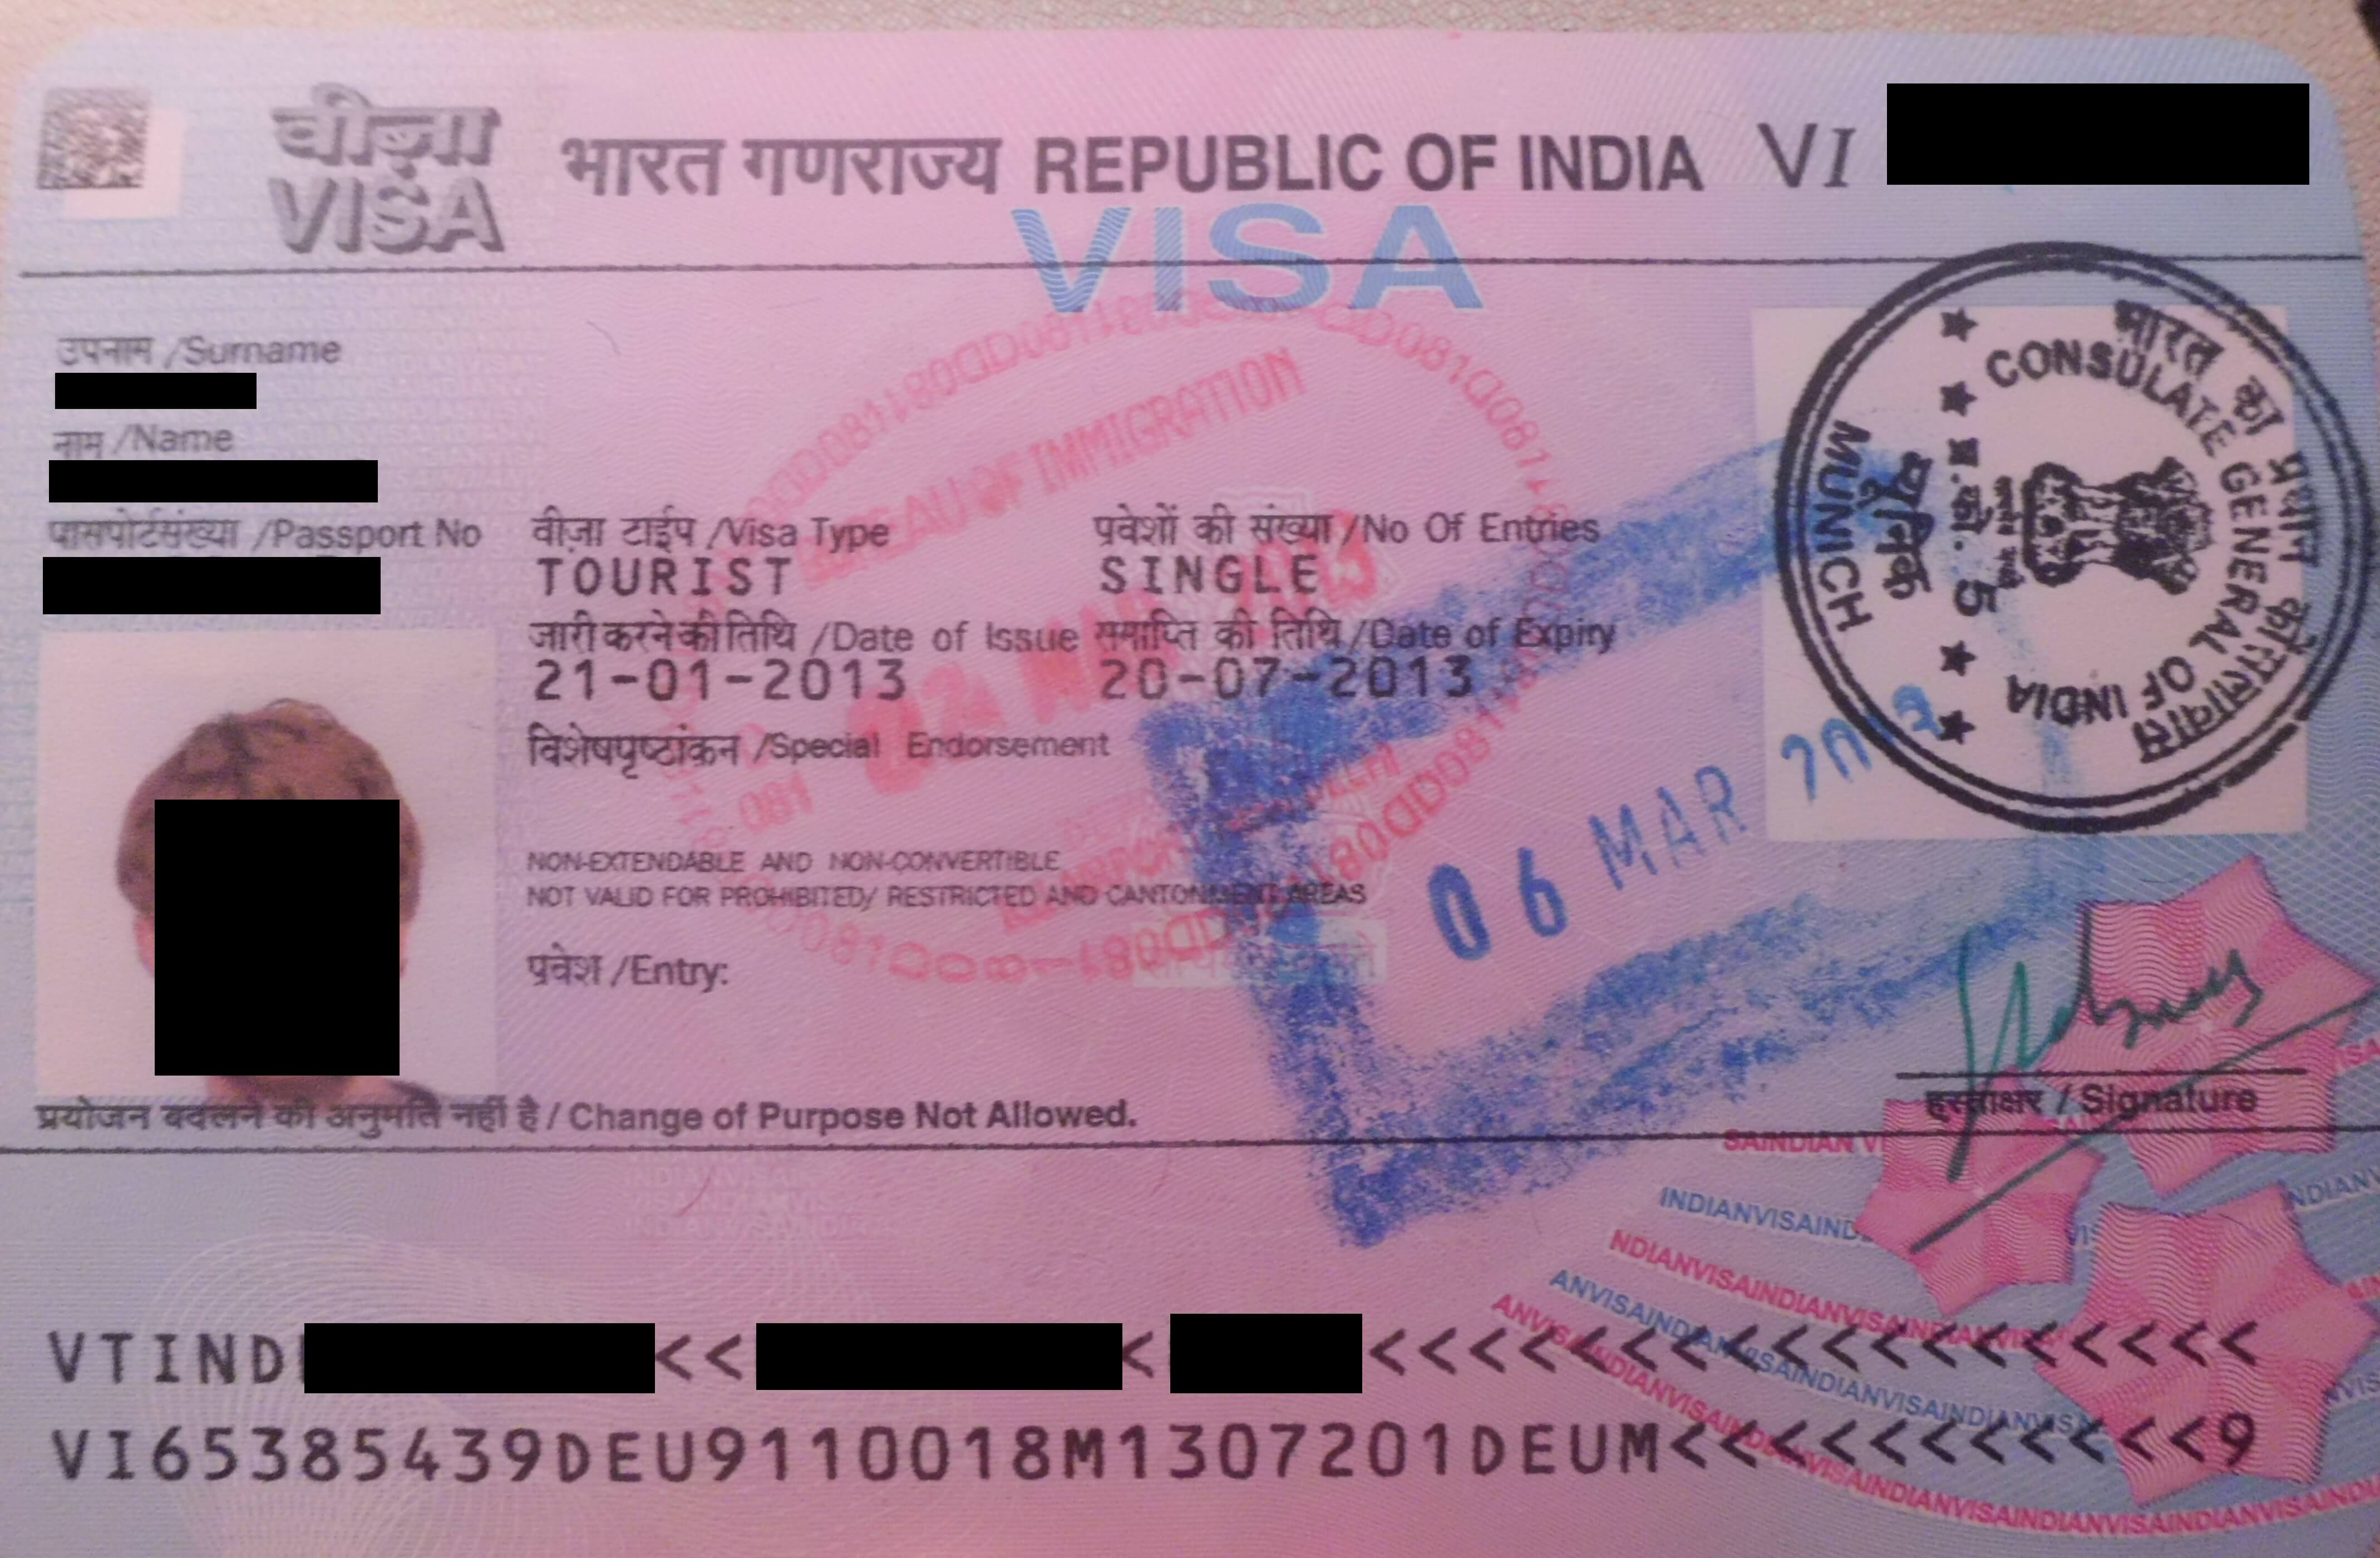 ... for temporary business without a visa through the Visa Waiver Program